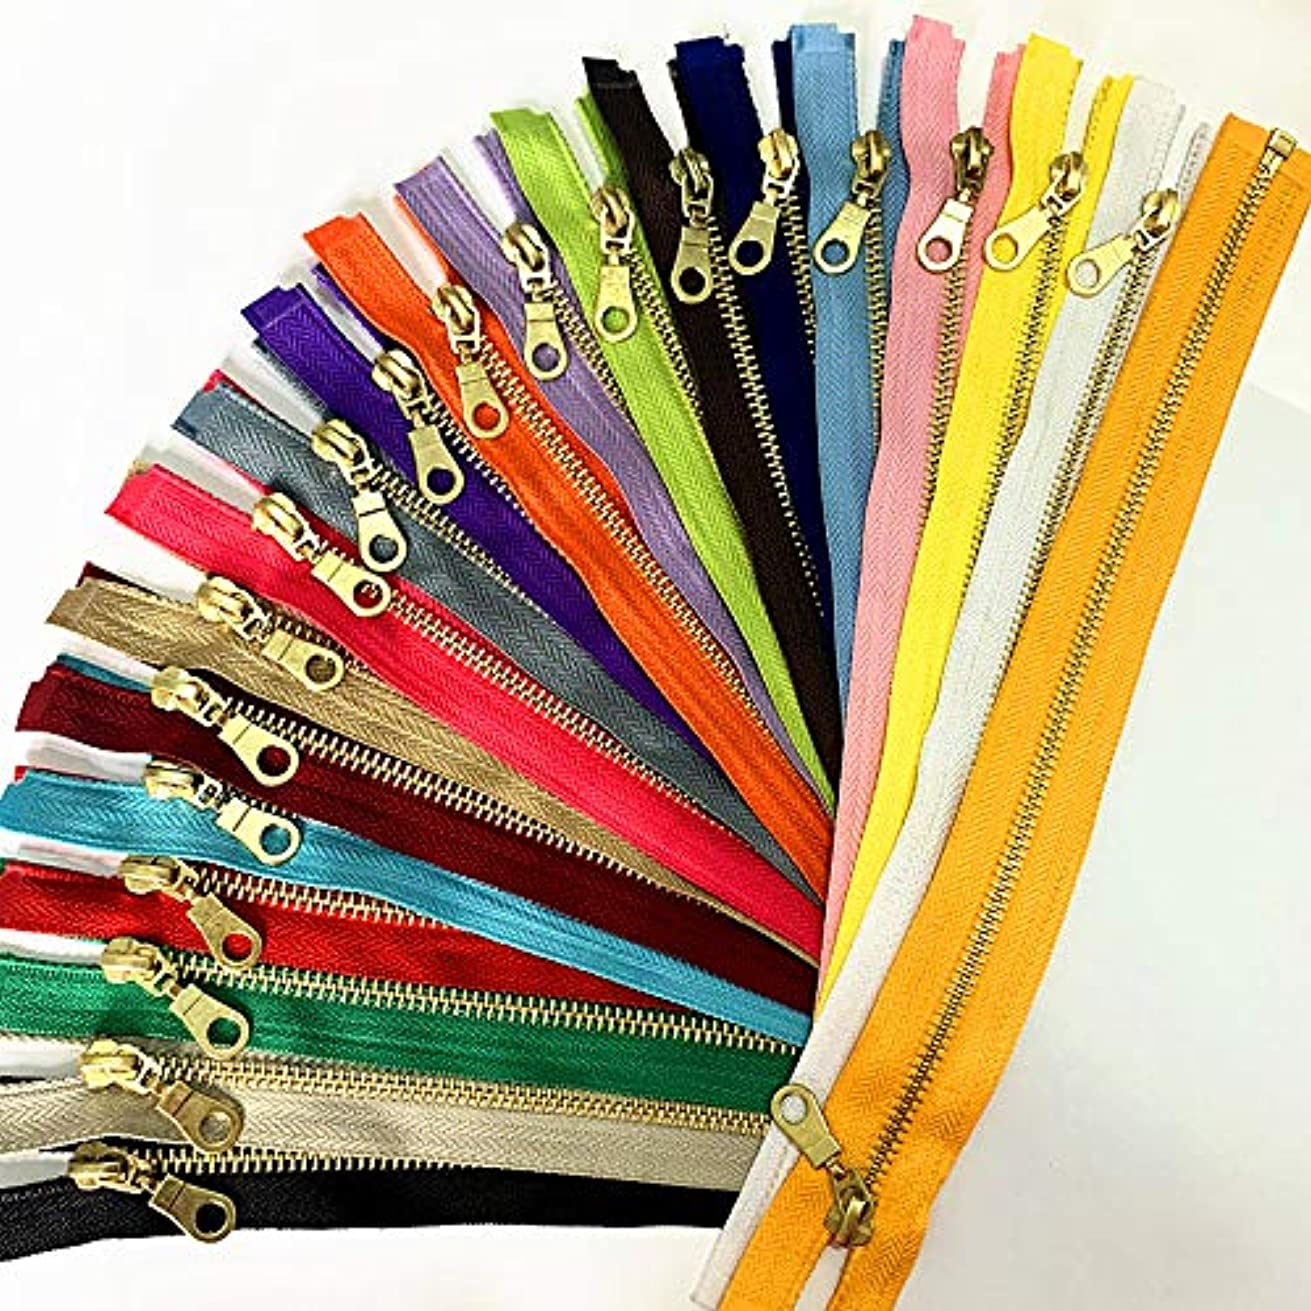 WKXFJJWZC Set of 20 Pieces 5# Brass Metal Separate Zippers in with Donut Zippers Pulls 24 Inch(20Color) (24inch)